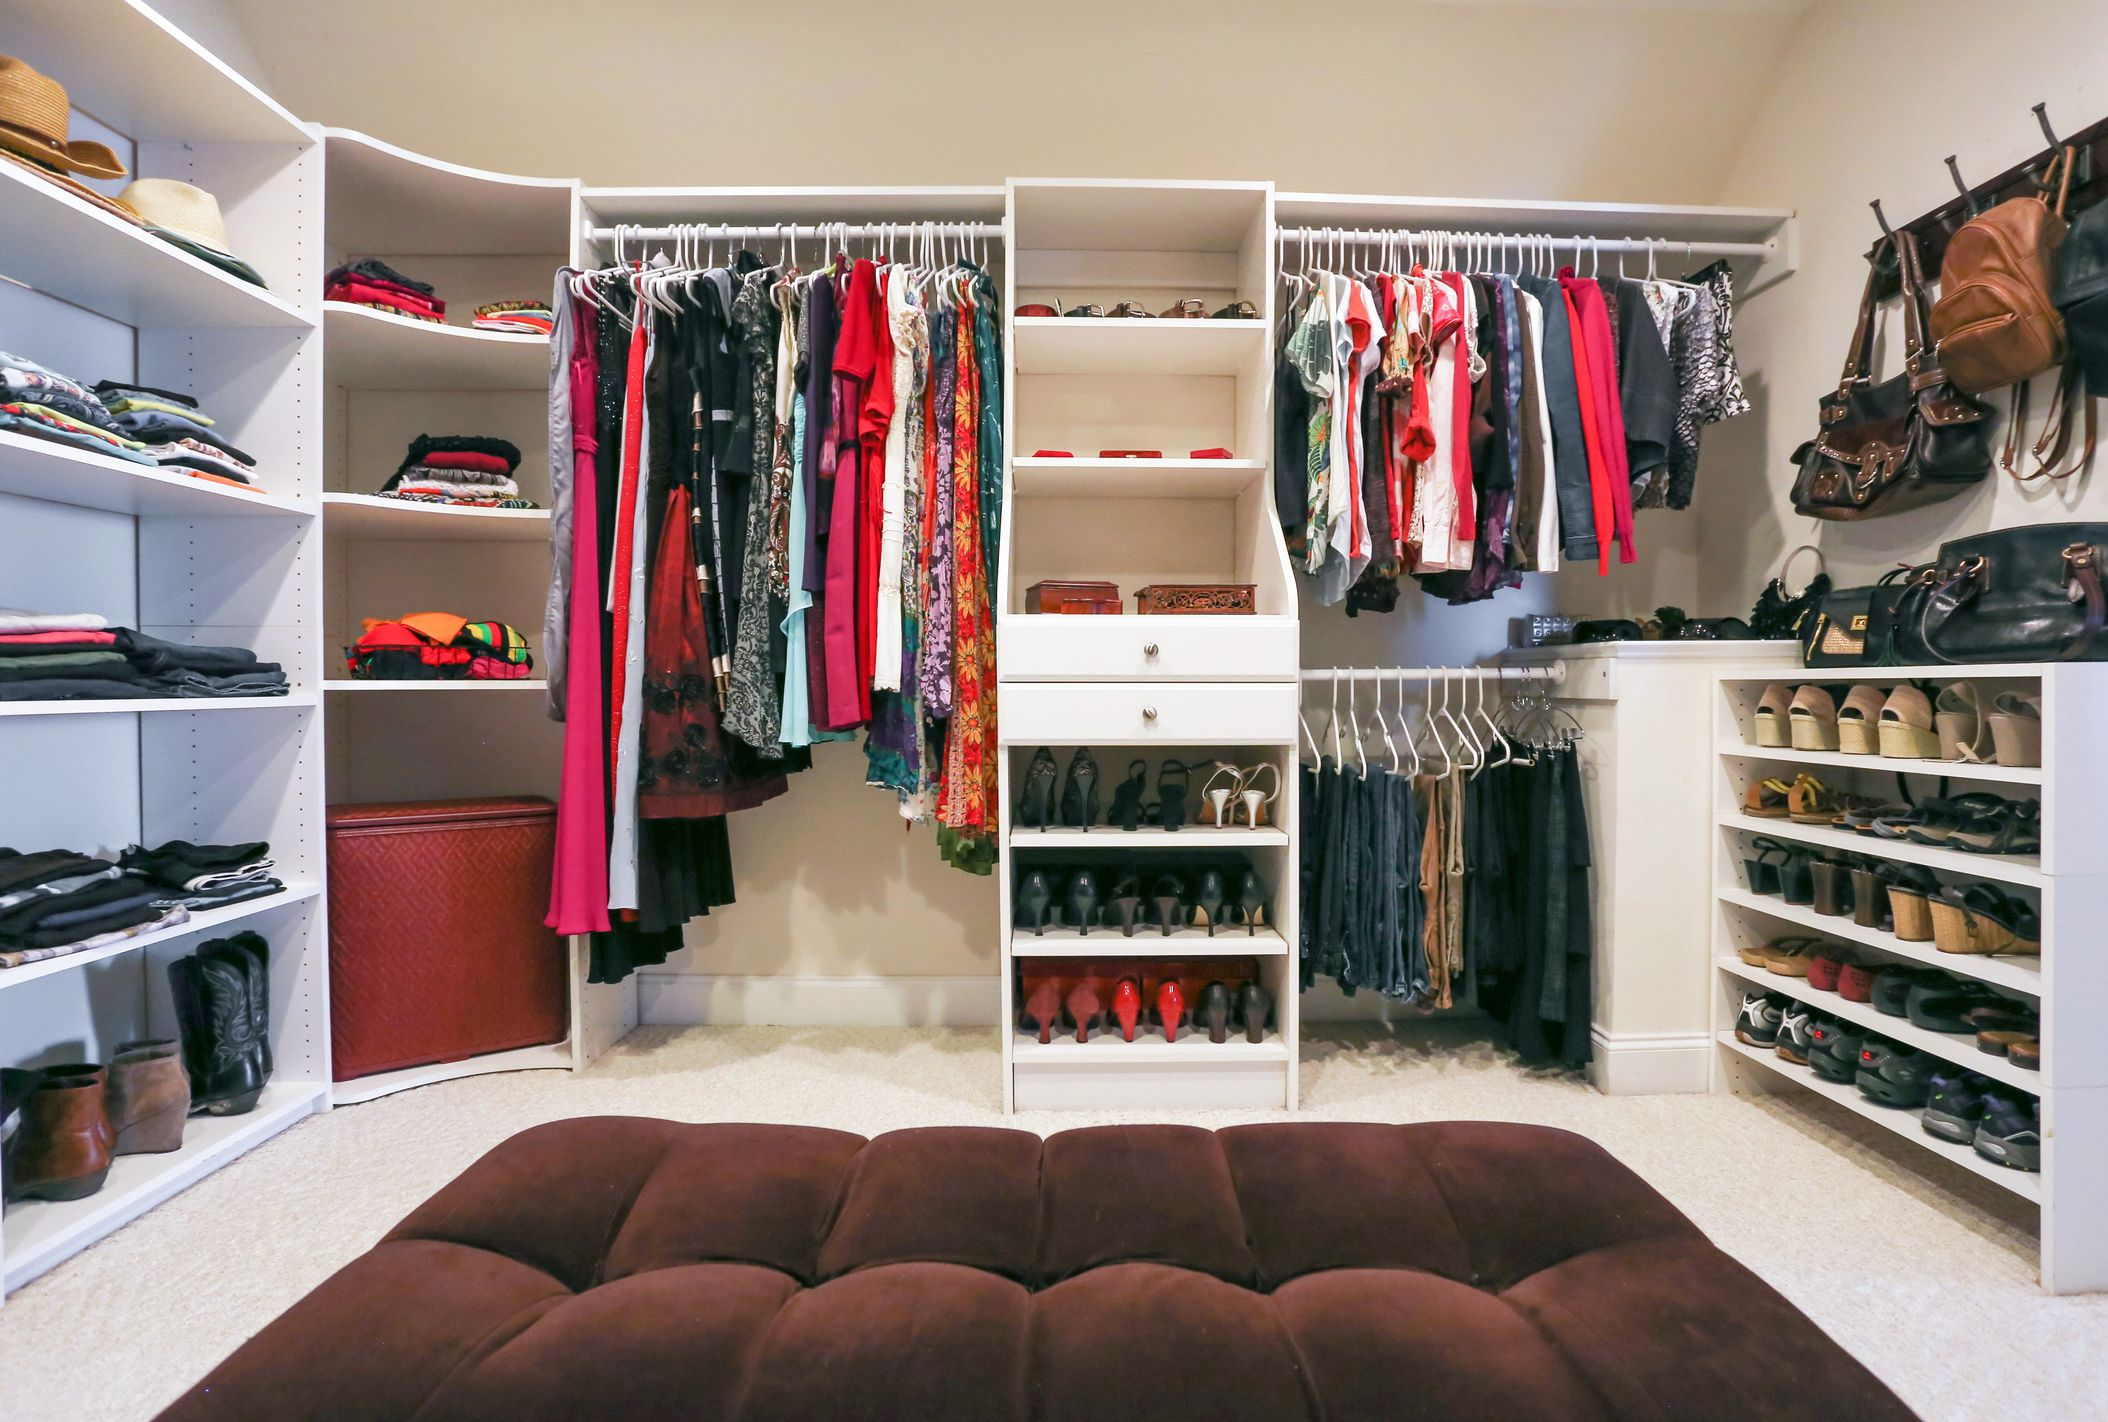 How To Declutter The Closet In 30 Minutes